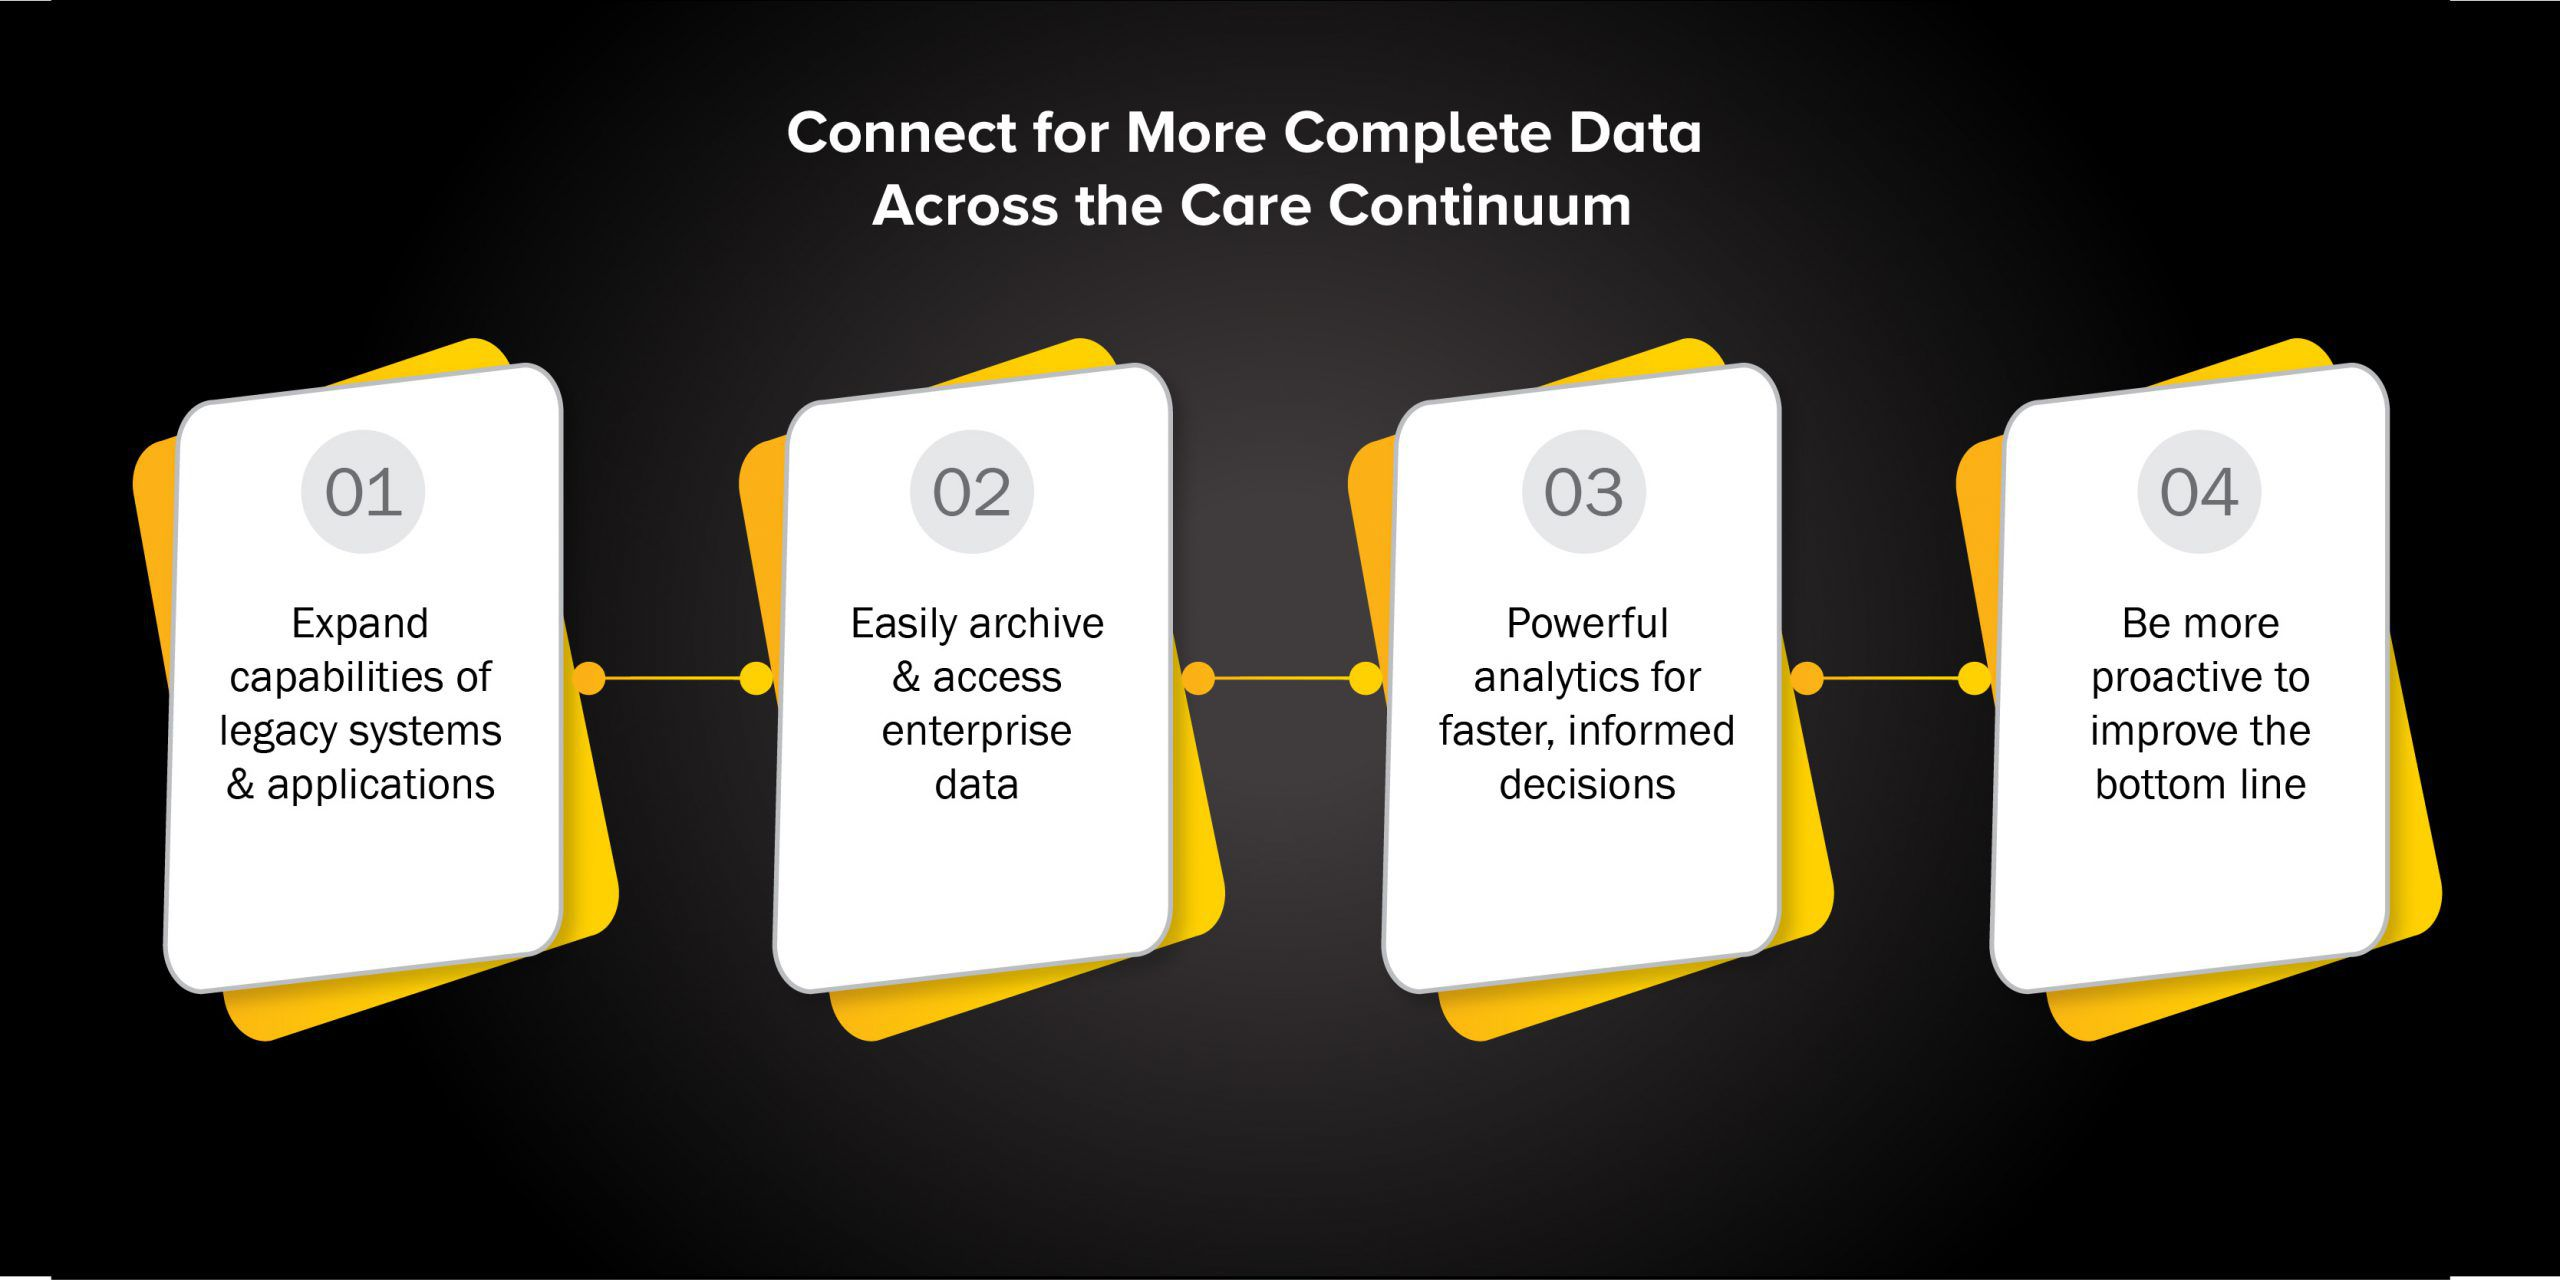 Connect-for-More-Complete-Data-Across-the-Care-Continuum-scaled